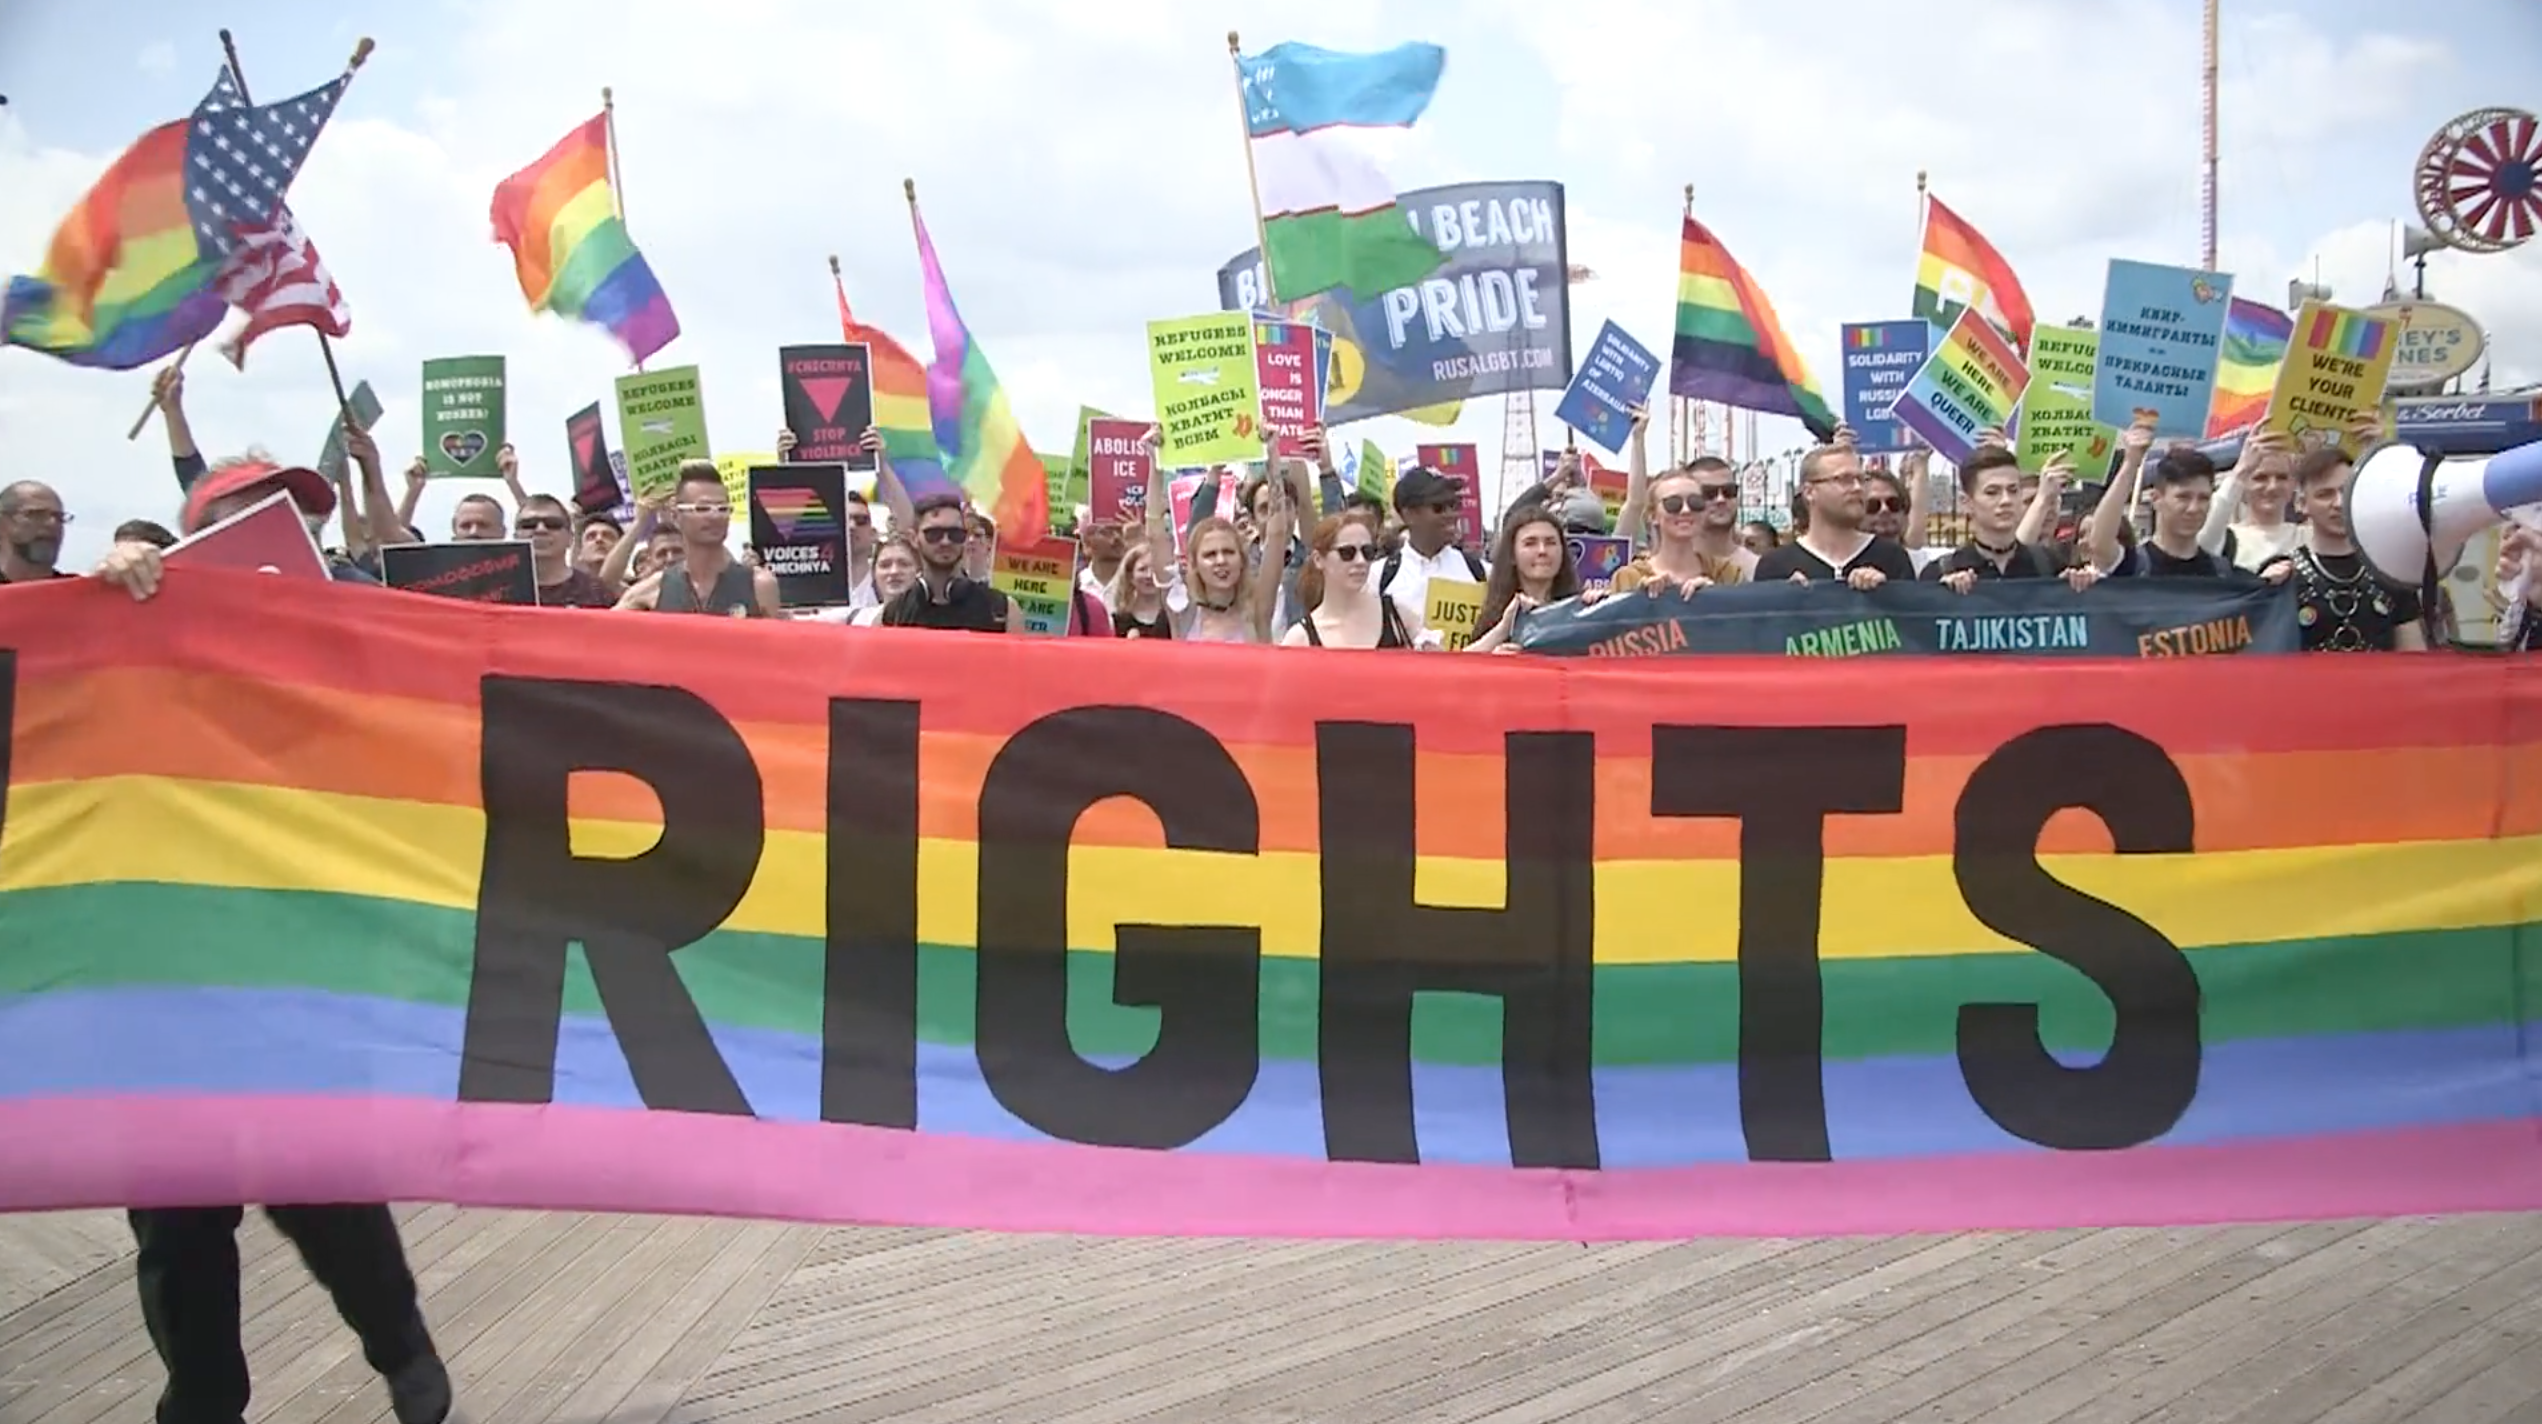 Brighton Beach Pride Parade 2018